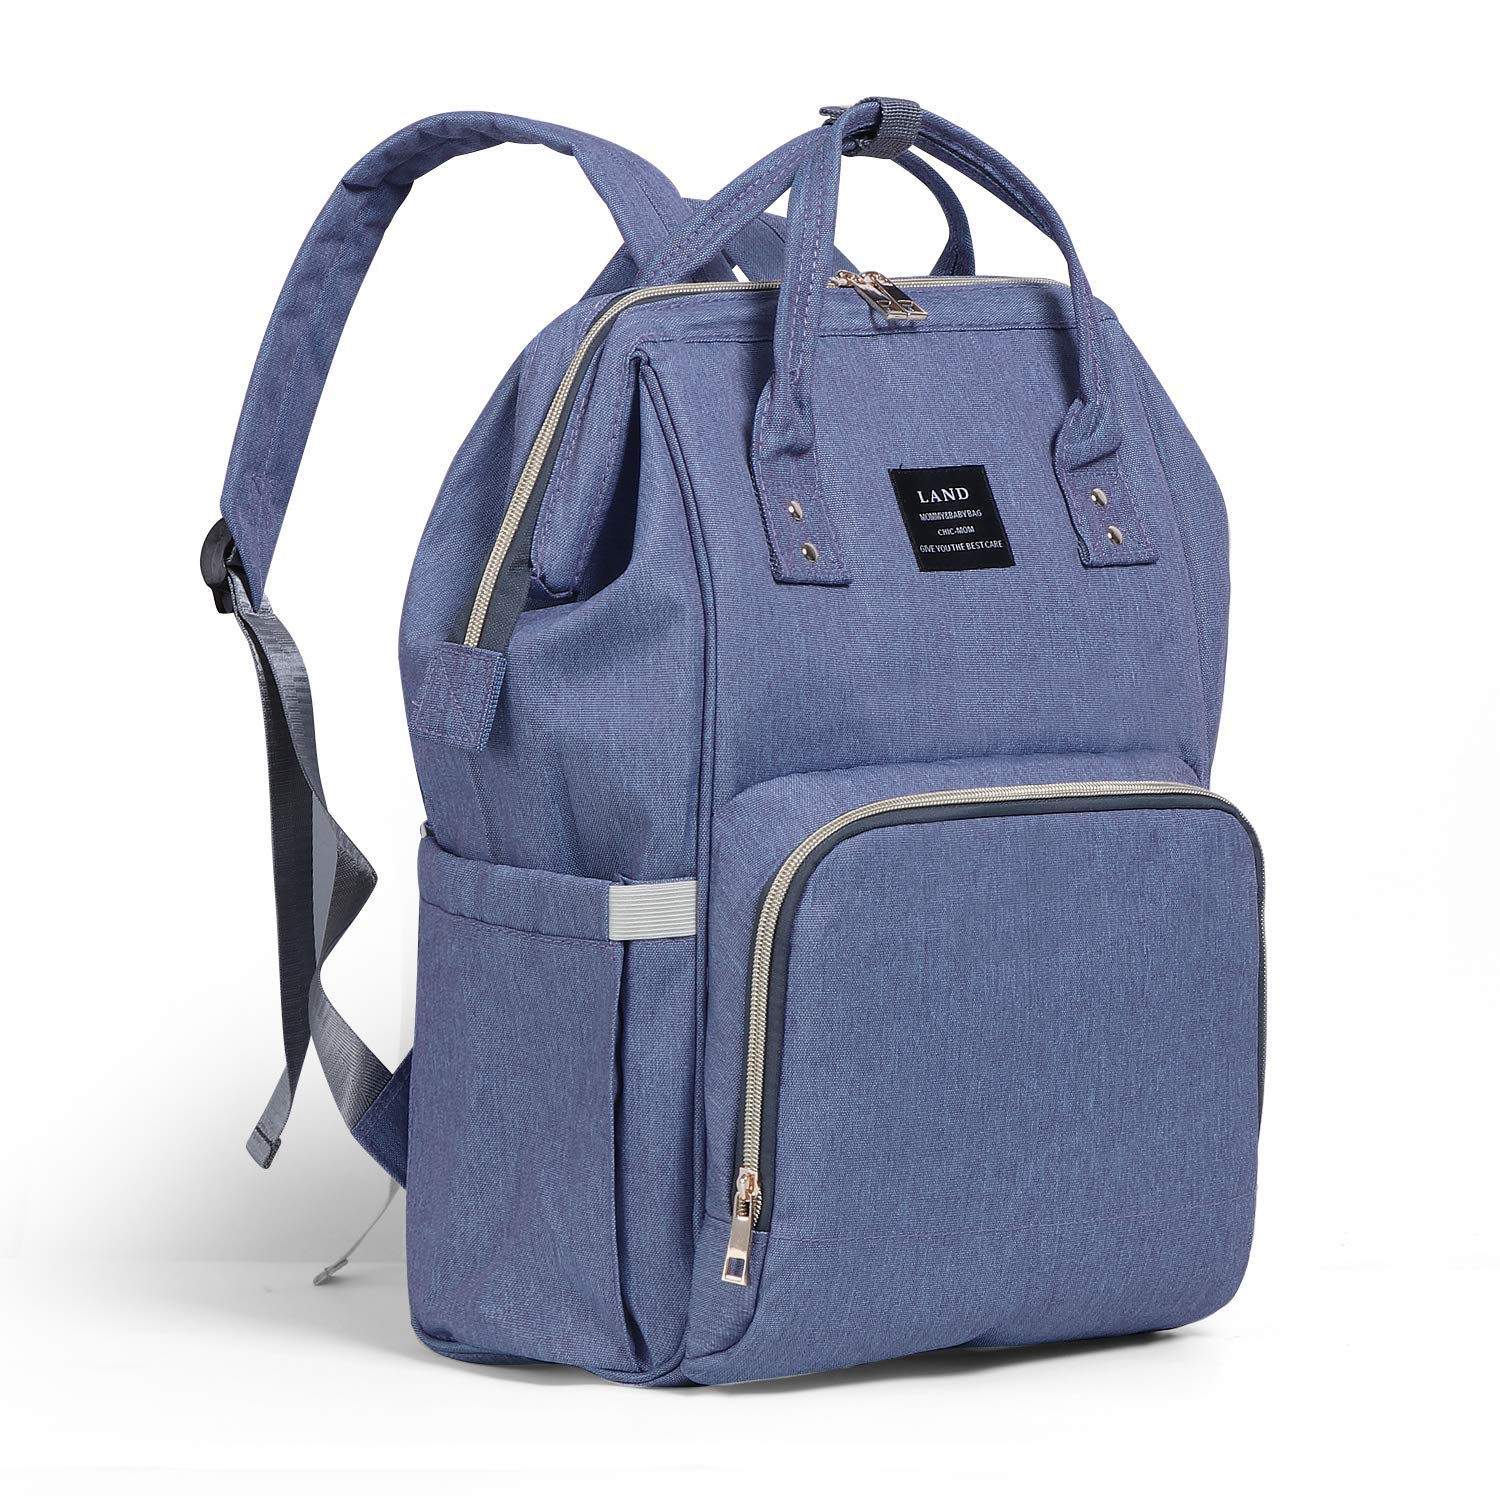 a6a657d48a14 Wide Open Design Baby Diaper Bag, Ticent Multi-Function Travel Backpack,  Nappy Tote Bag for Mom &...